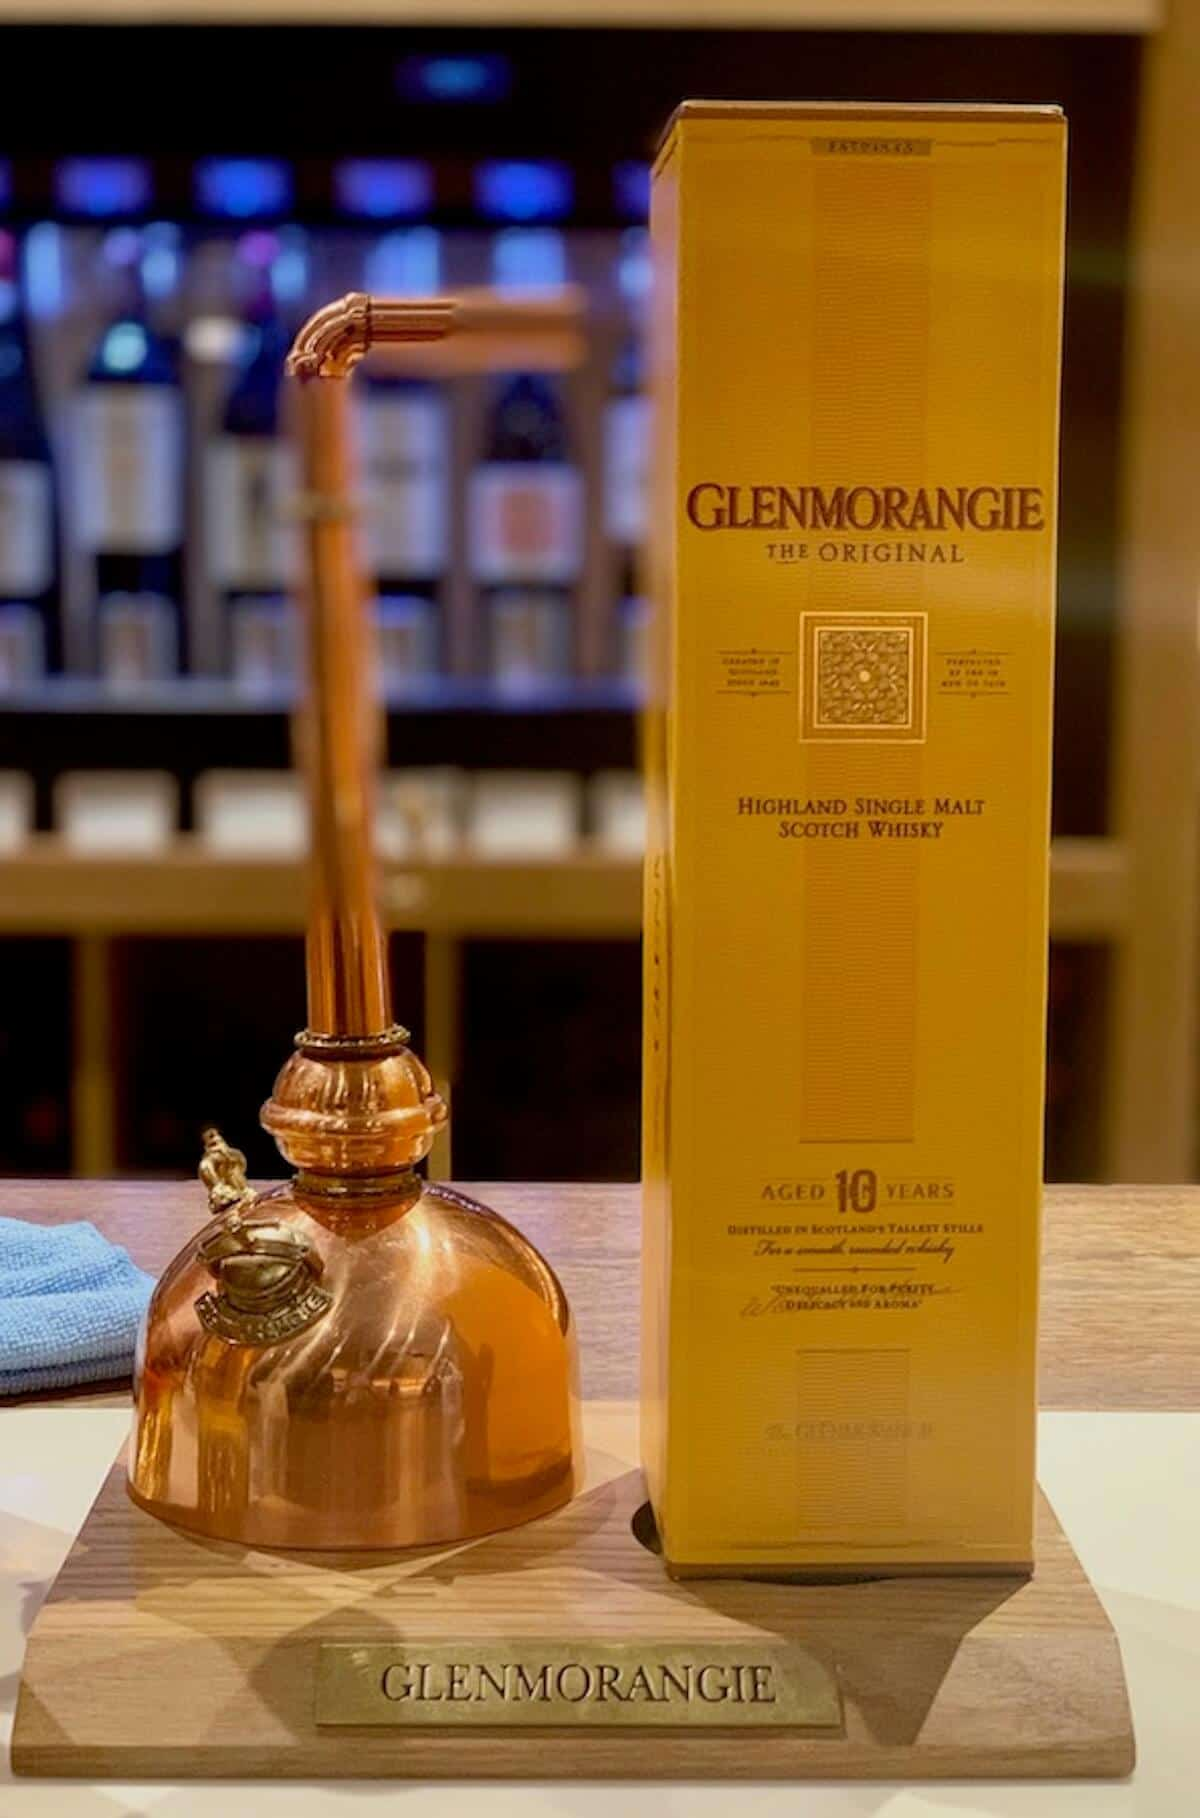 Glenmorangie Alltag with pot still model